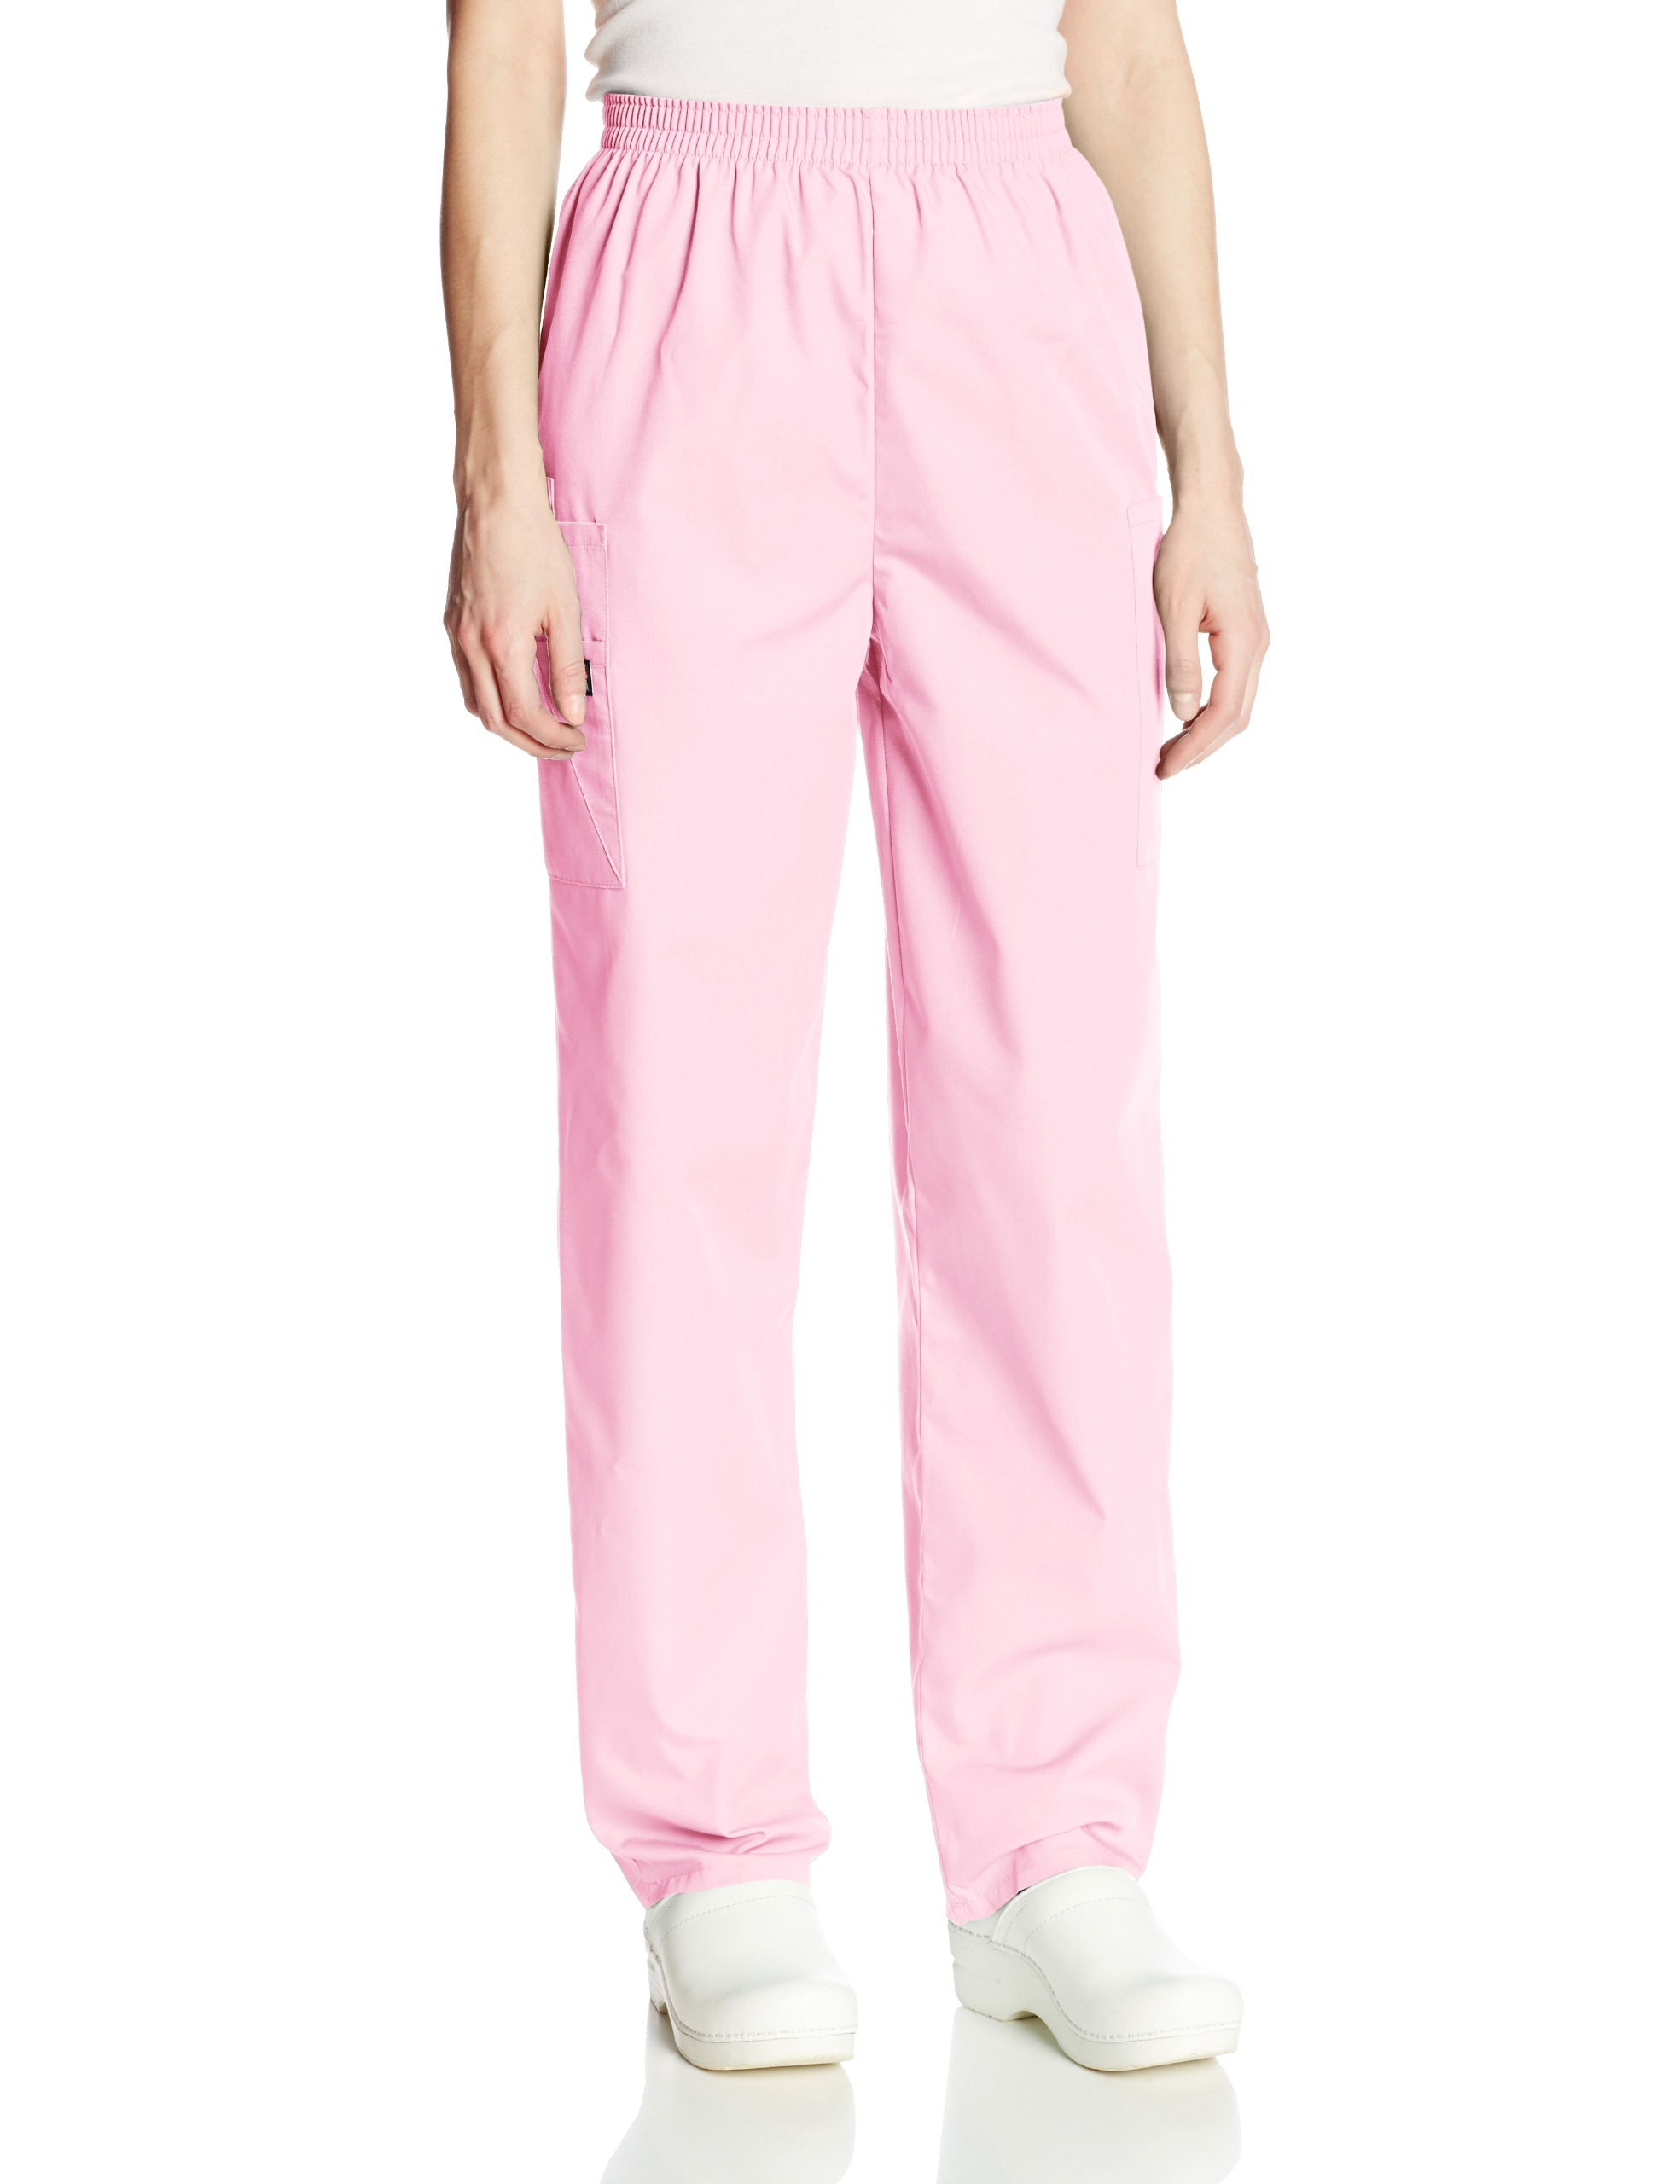 Cherokee Women's Workwear Scrubs Pull-On Cargo Pant, Pink Blush, X-Small-Tall